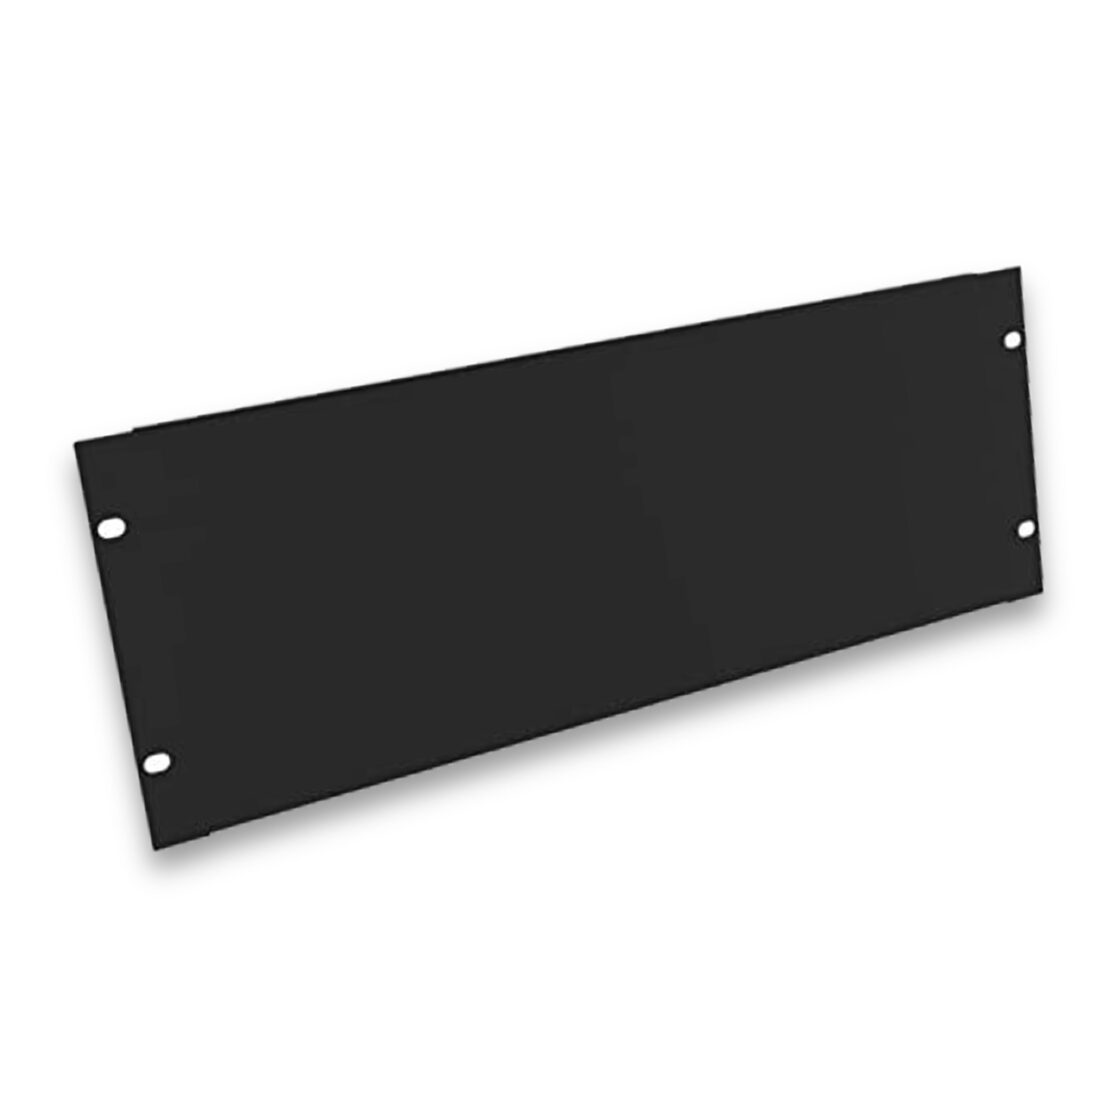 "4u flanged blank 19"" rack panel"